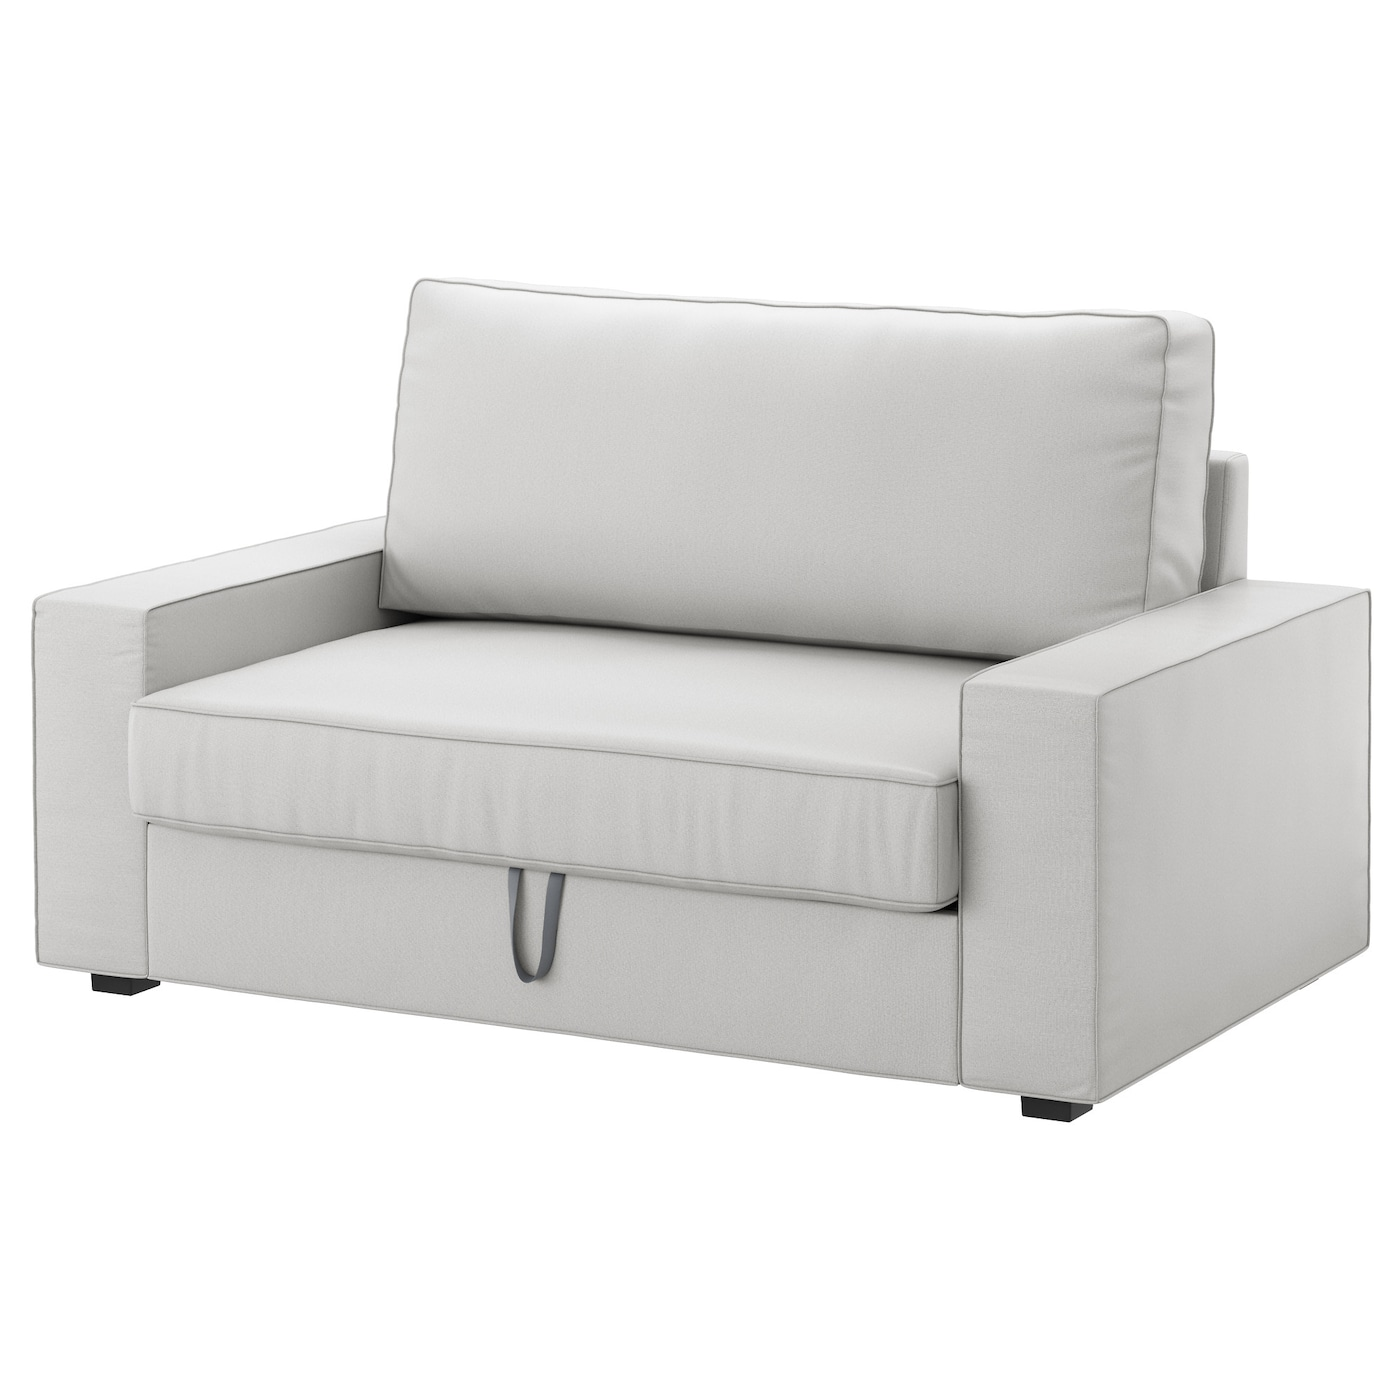 Vilasund two seat sofa bed ramna light grey ikea - Sofa cama pequeno ...